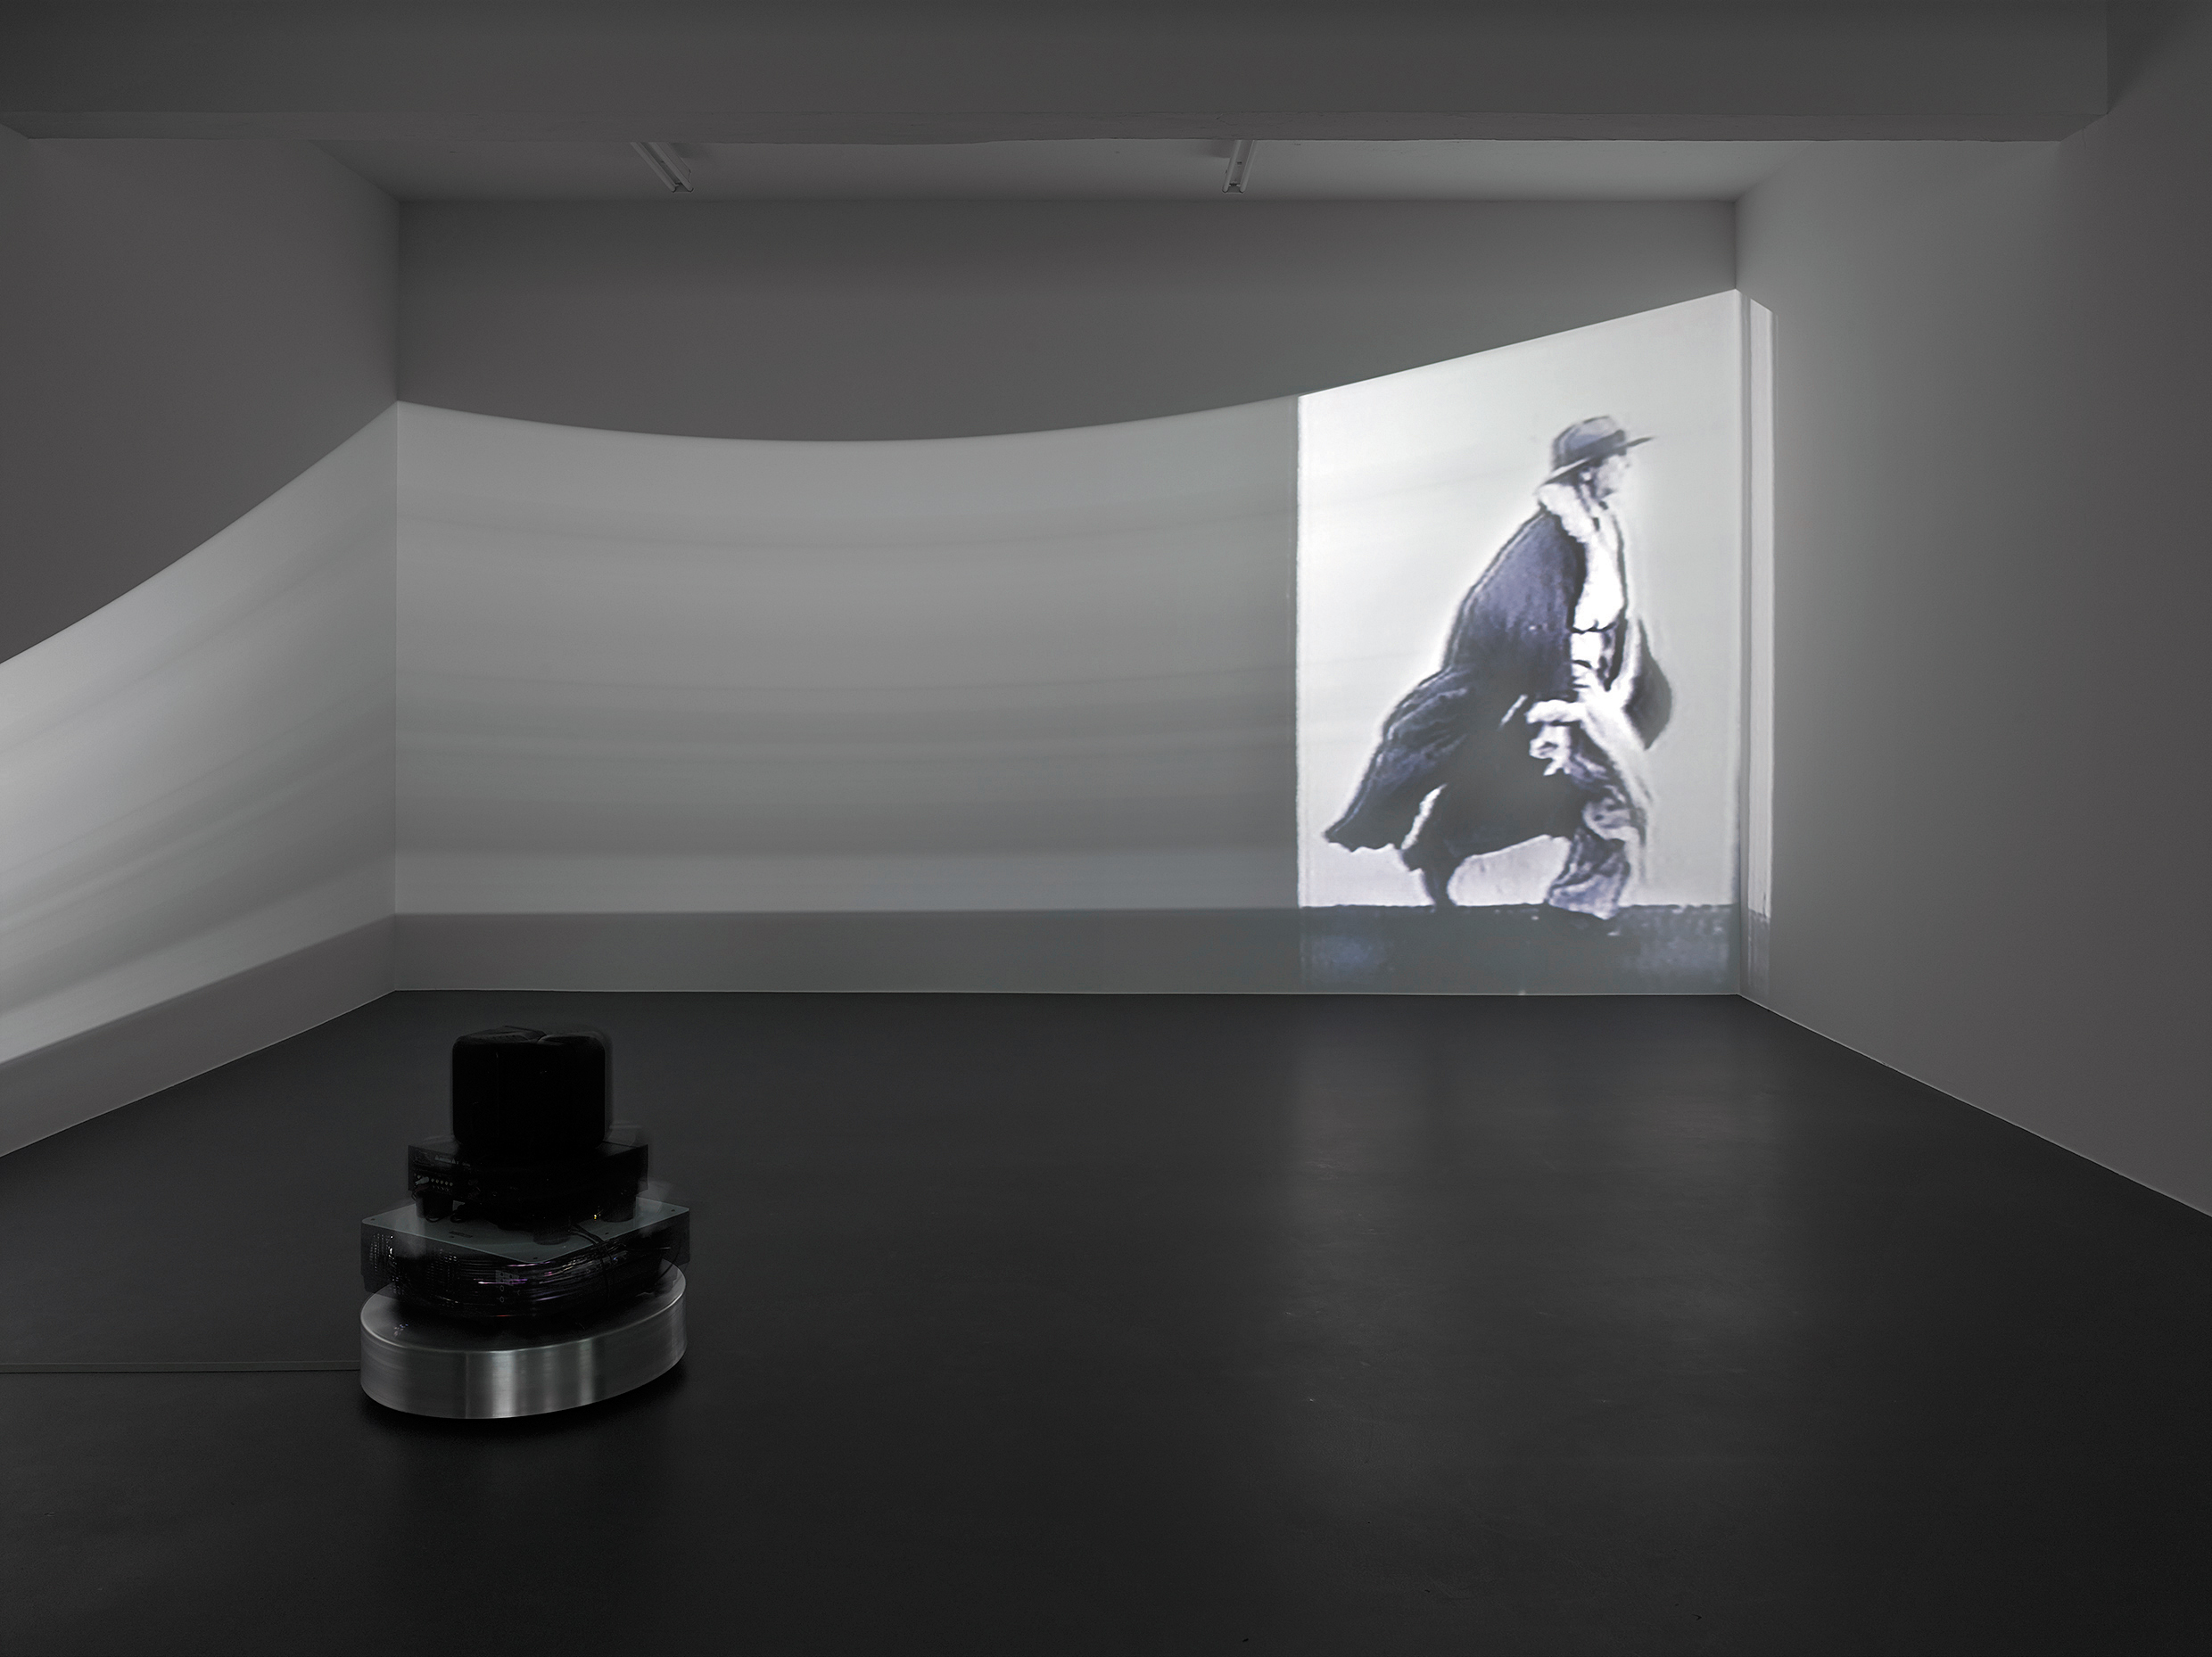 Sturtevant. Dillinger Running Series. 2000. Single channel video installation on rotating platform; video: black and white, sound. Dimensions variable; video: 26 min., 55 sec. Julia Stoschek Foundation e.V., Düsseldorf. Photo: Simon Vogel. © Estate Sturtevant, Paris.